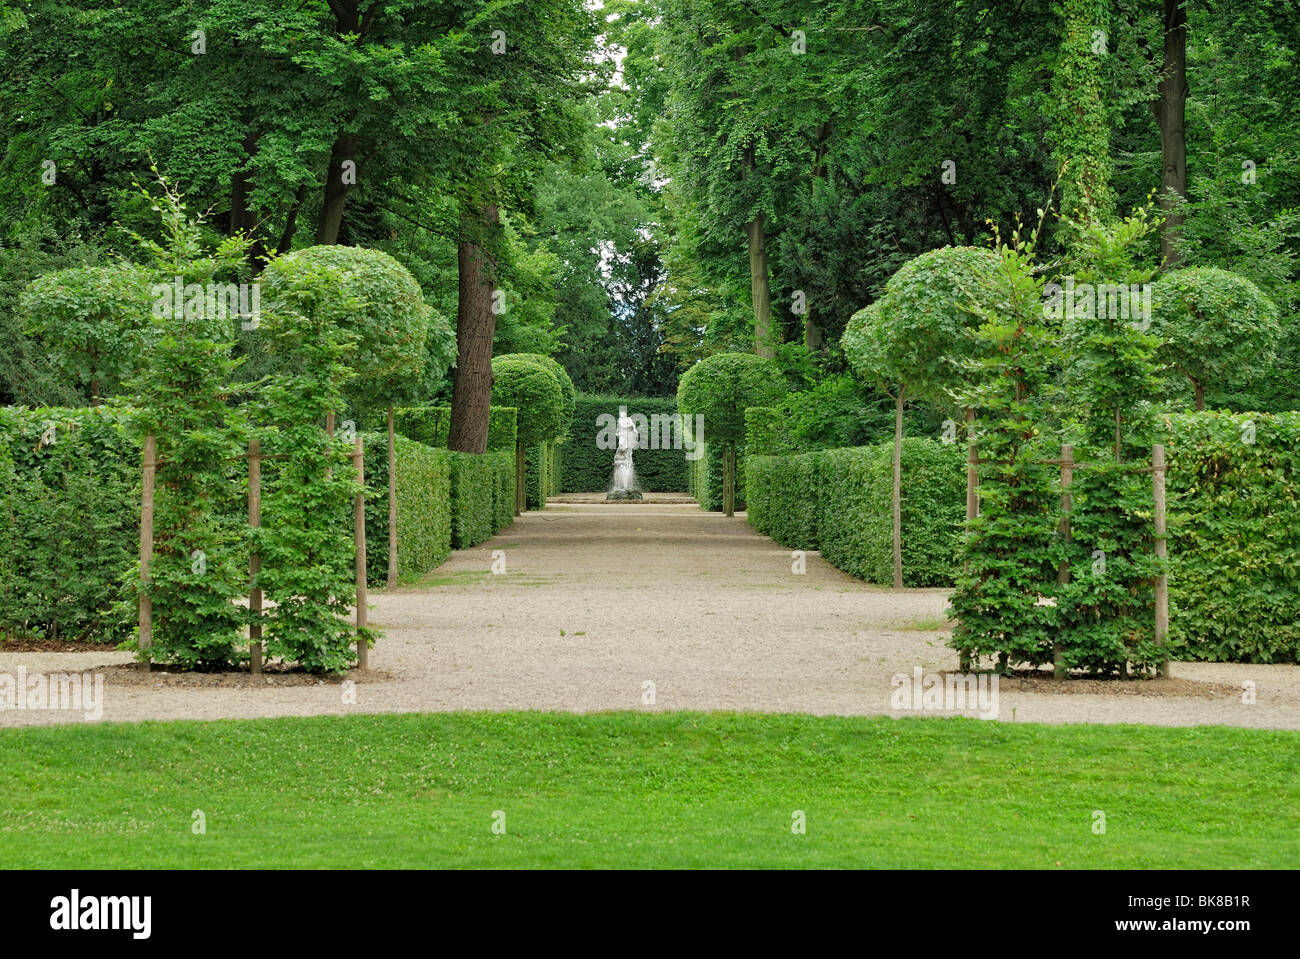 Hedges and trees clipped in form, baroque garden, Schloss Schwetzingen Castle, Baden-Wuerttemberg, Germany, Europe Stock Photo